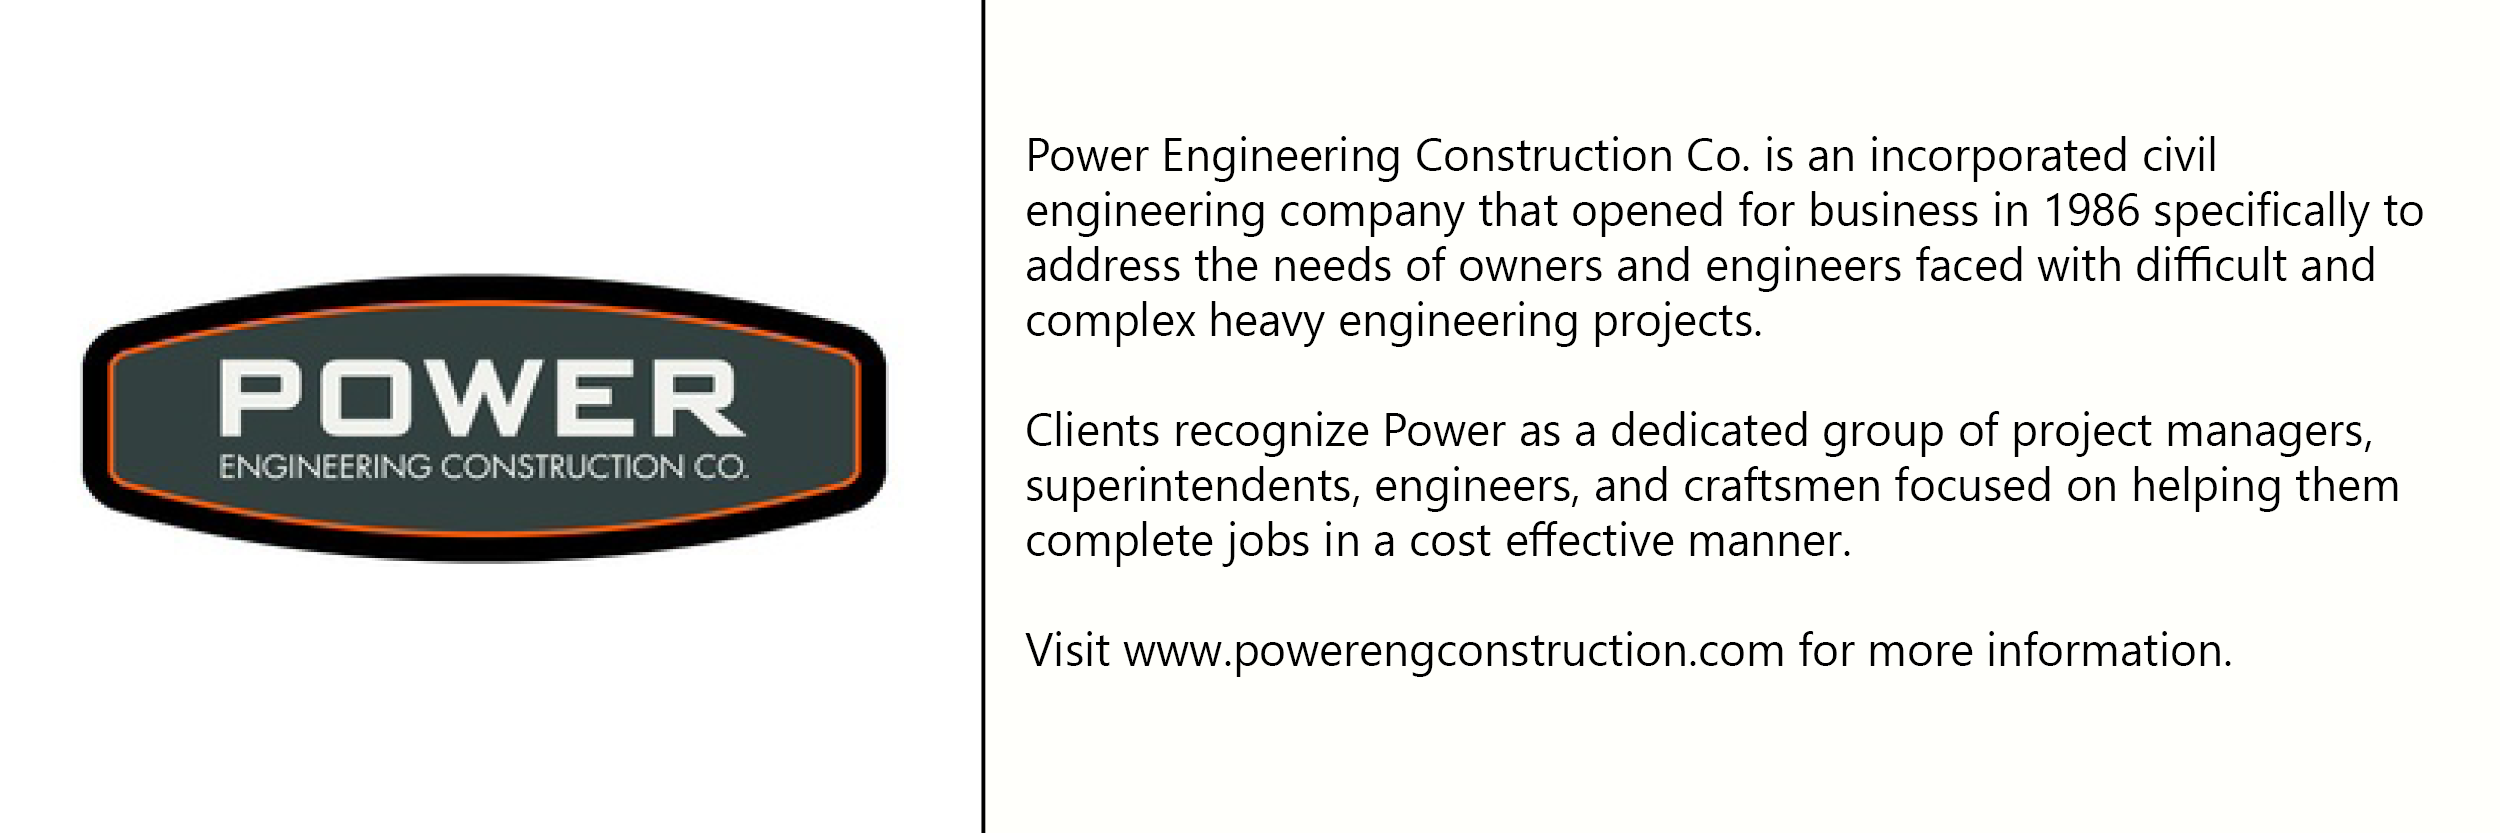 Power engineering  logo with description of company